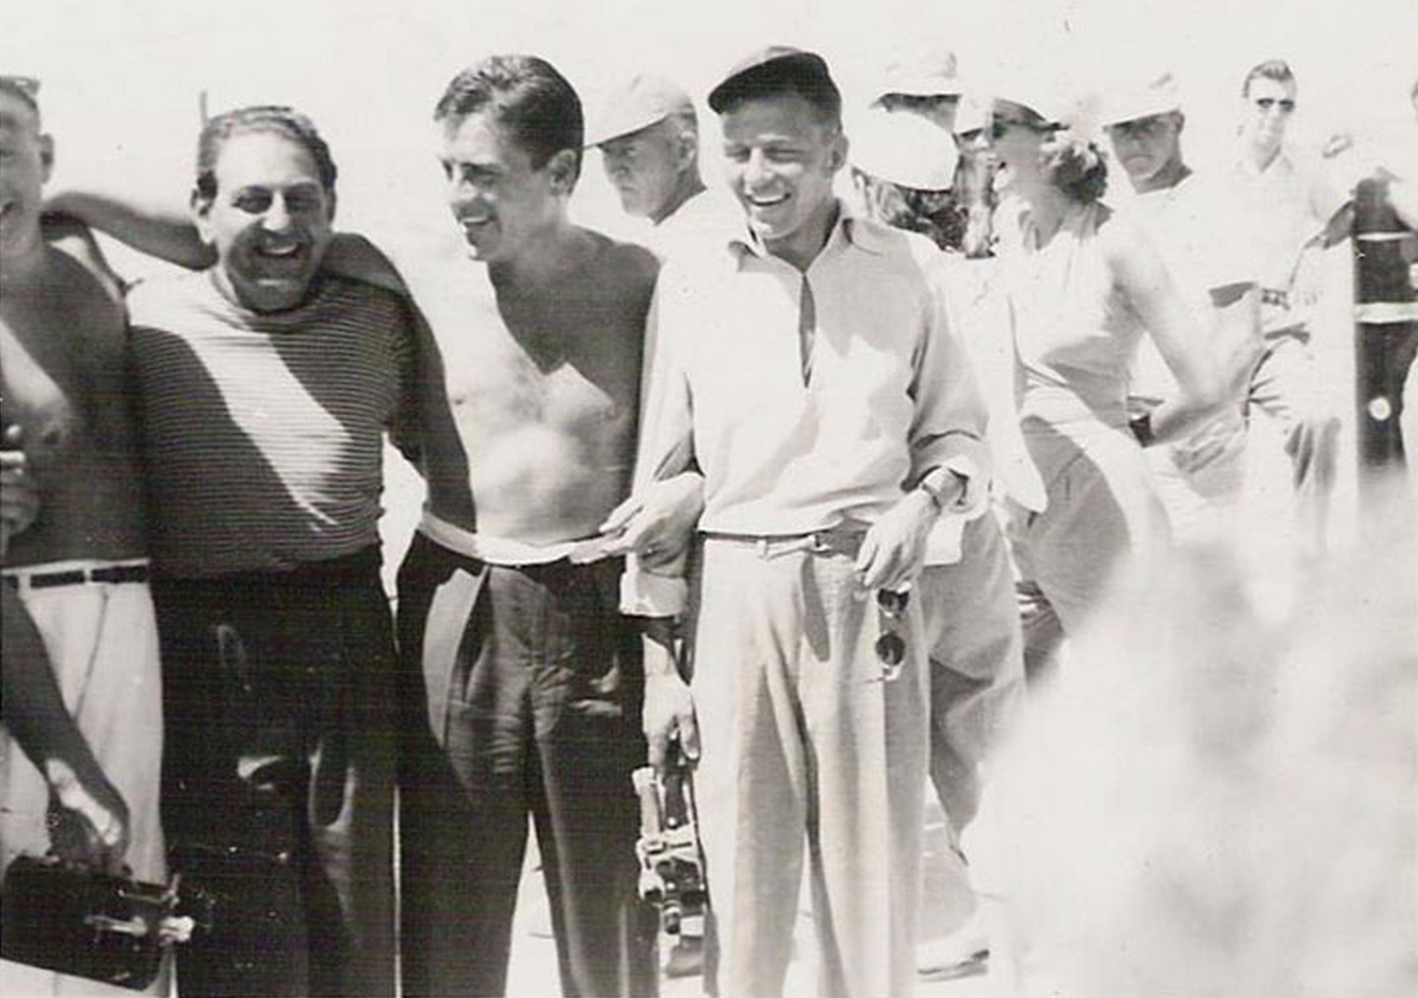 Guy Lombardo at Date Palm Beach with pals Jerry Lewis and Frank Sinatra Guy Lombardo held many speed records on water, some set here at Eilers Date Palm Beach. (Photo courtesy of the Salton Sea History Museum)